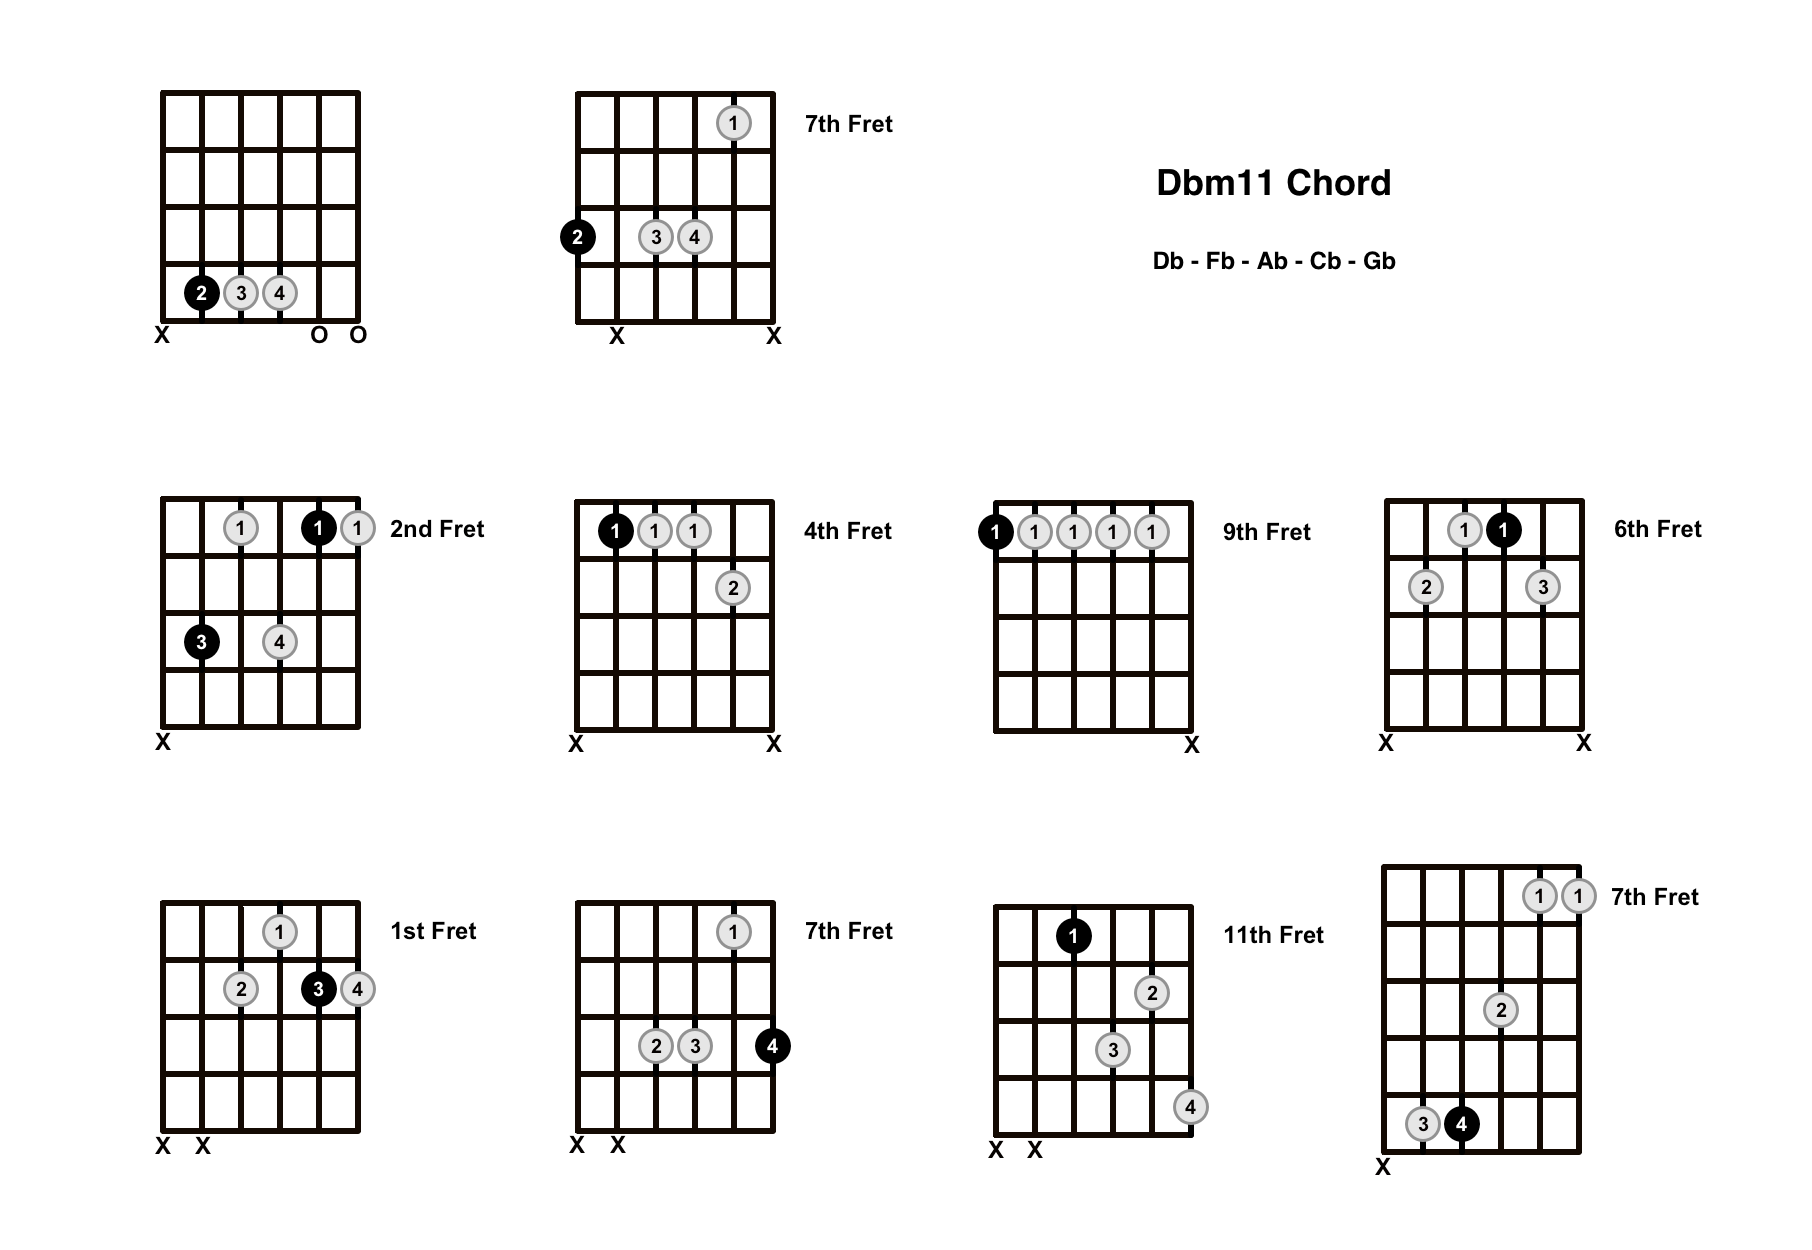 Dbm11 Chord On The Guitar (D Flat minor 11) – Diagrams, Finger Positions and Theory